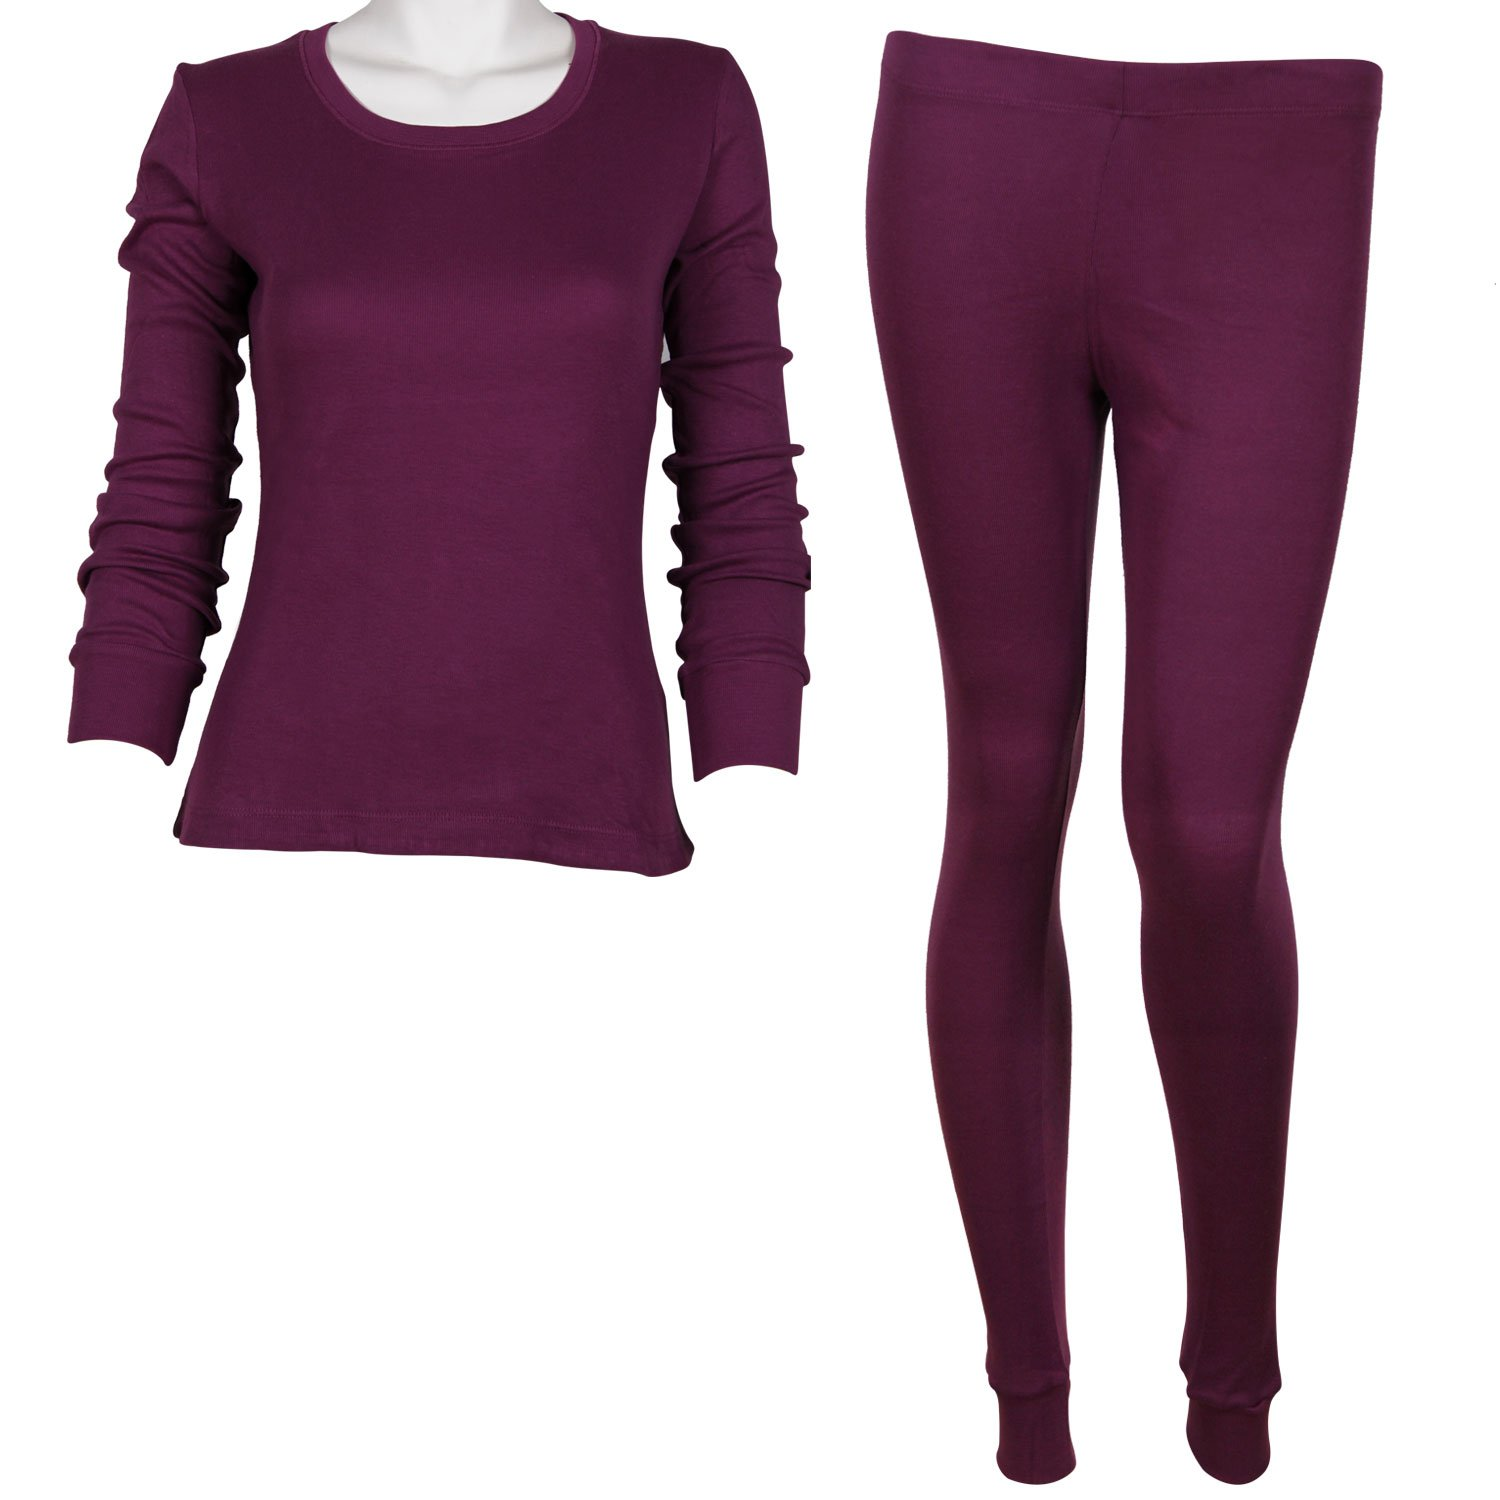 Godsen Women's 2 Piece Thermal Pajamas Long Johns Set Cotton Purple 85201802